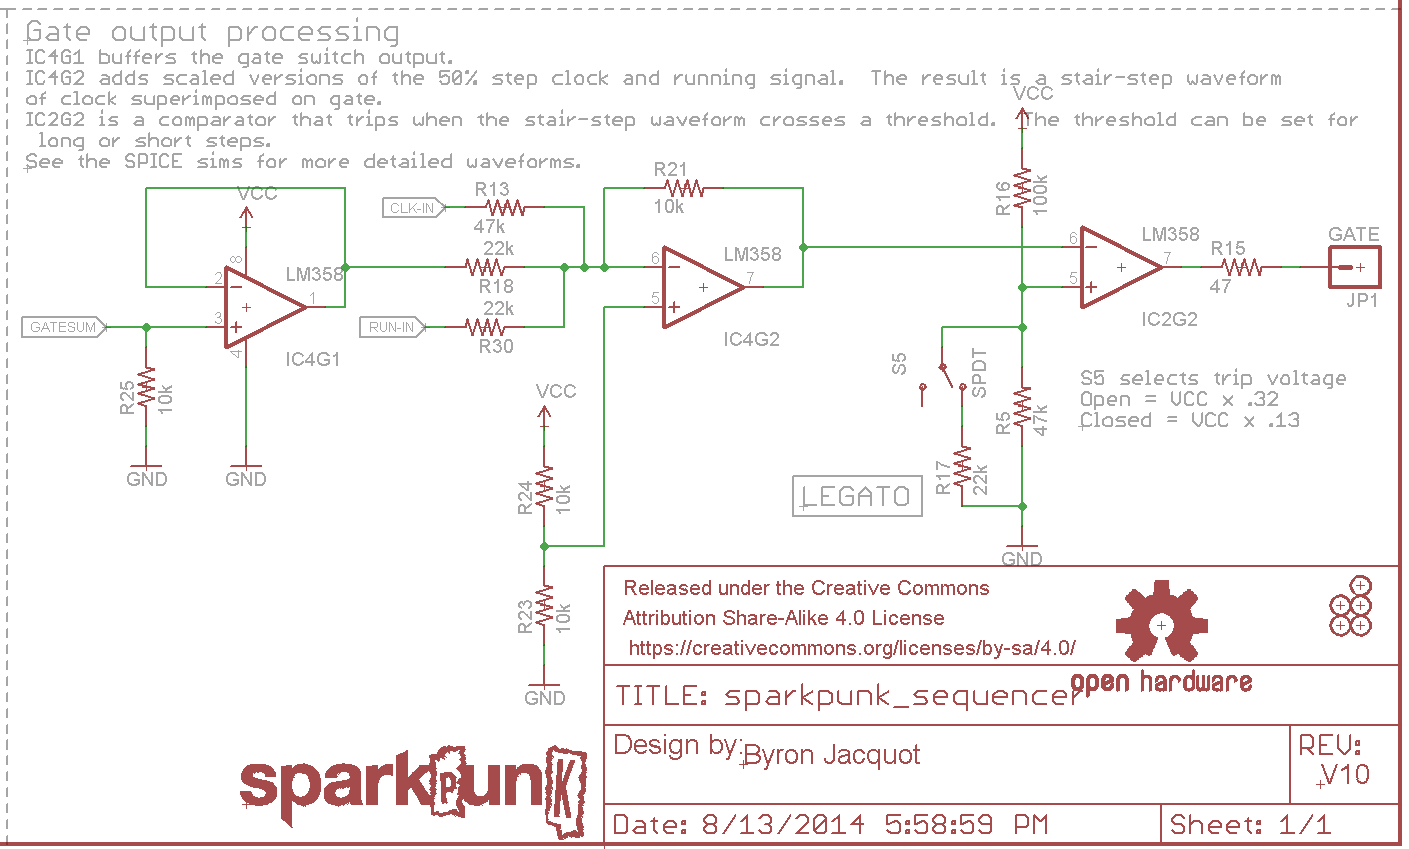 schem gate sparkpunk sequencer theory and applications guide learn sparkfun com